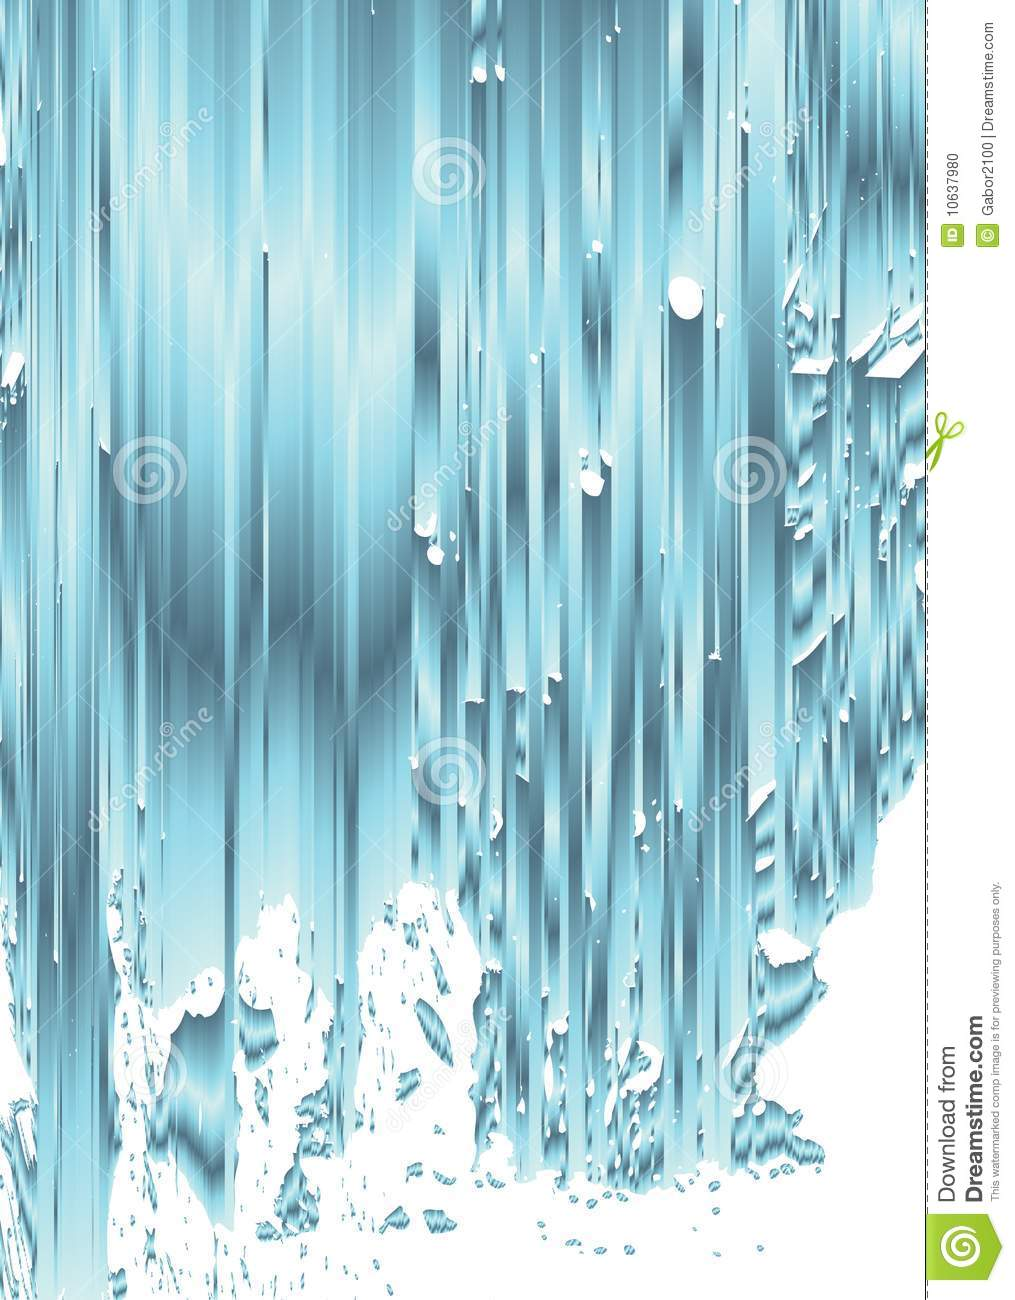 Abstract Waterfall Stock Vector Illustration Of Water